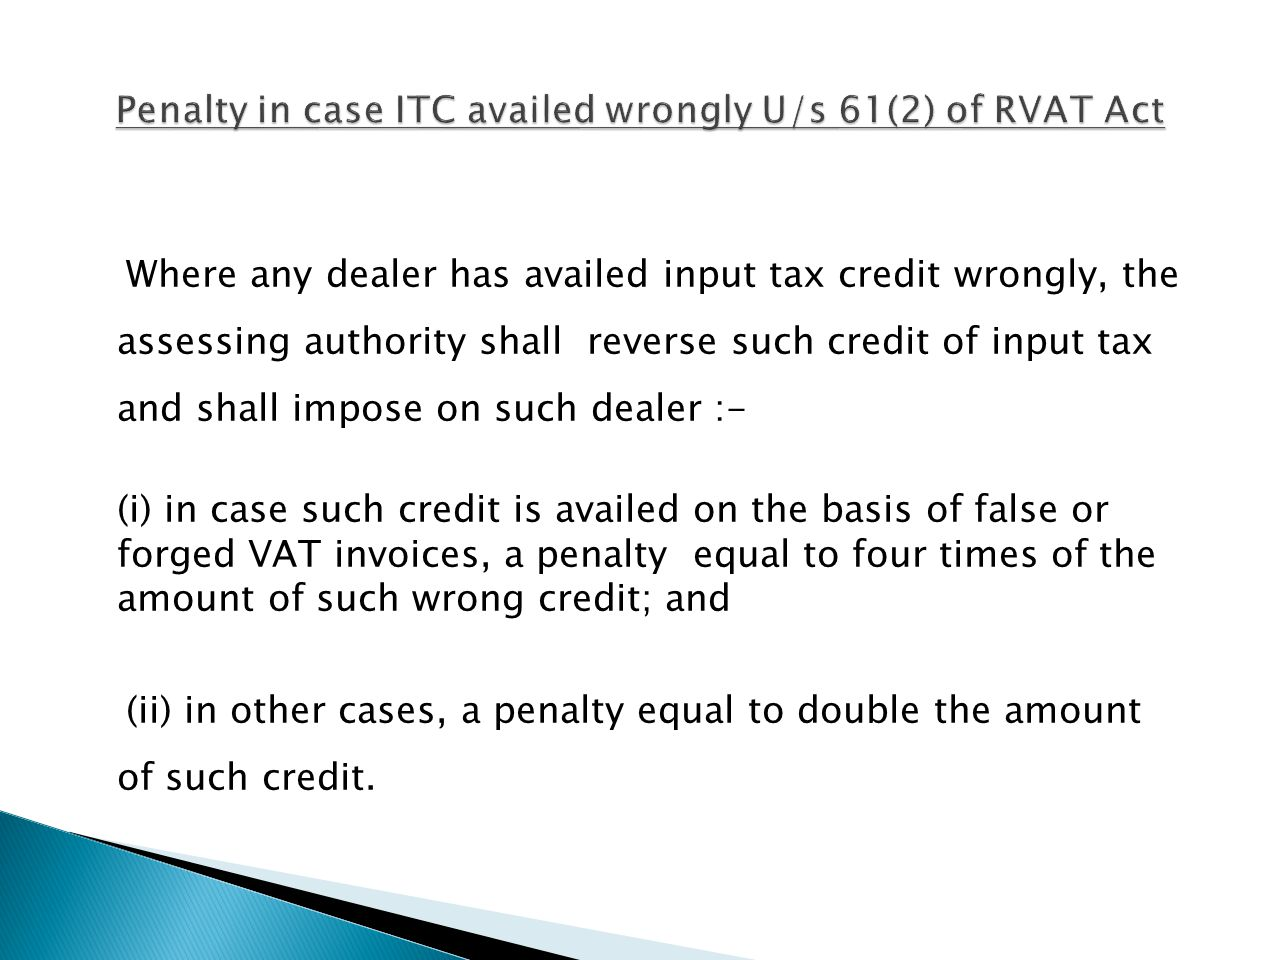 Where any dealer has availed input tax credit wrongly, the assessing authority shall reverse such credit of input tax and shall impose on such dealer :- (i) in case such credit is availed on the basis of false or forged VAT invoices, a penalty equal to four times of the amount of such wrong credit; and (ii) in other cases, a penalty equal to double the amount of such credit.